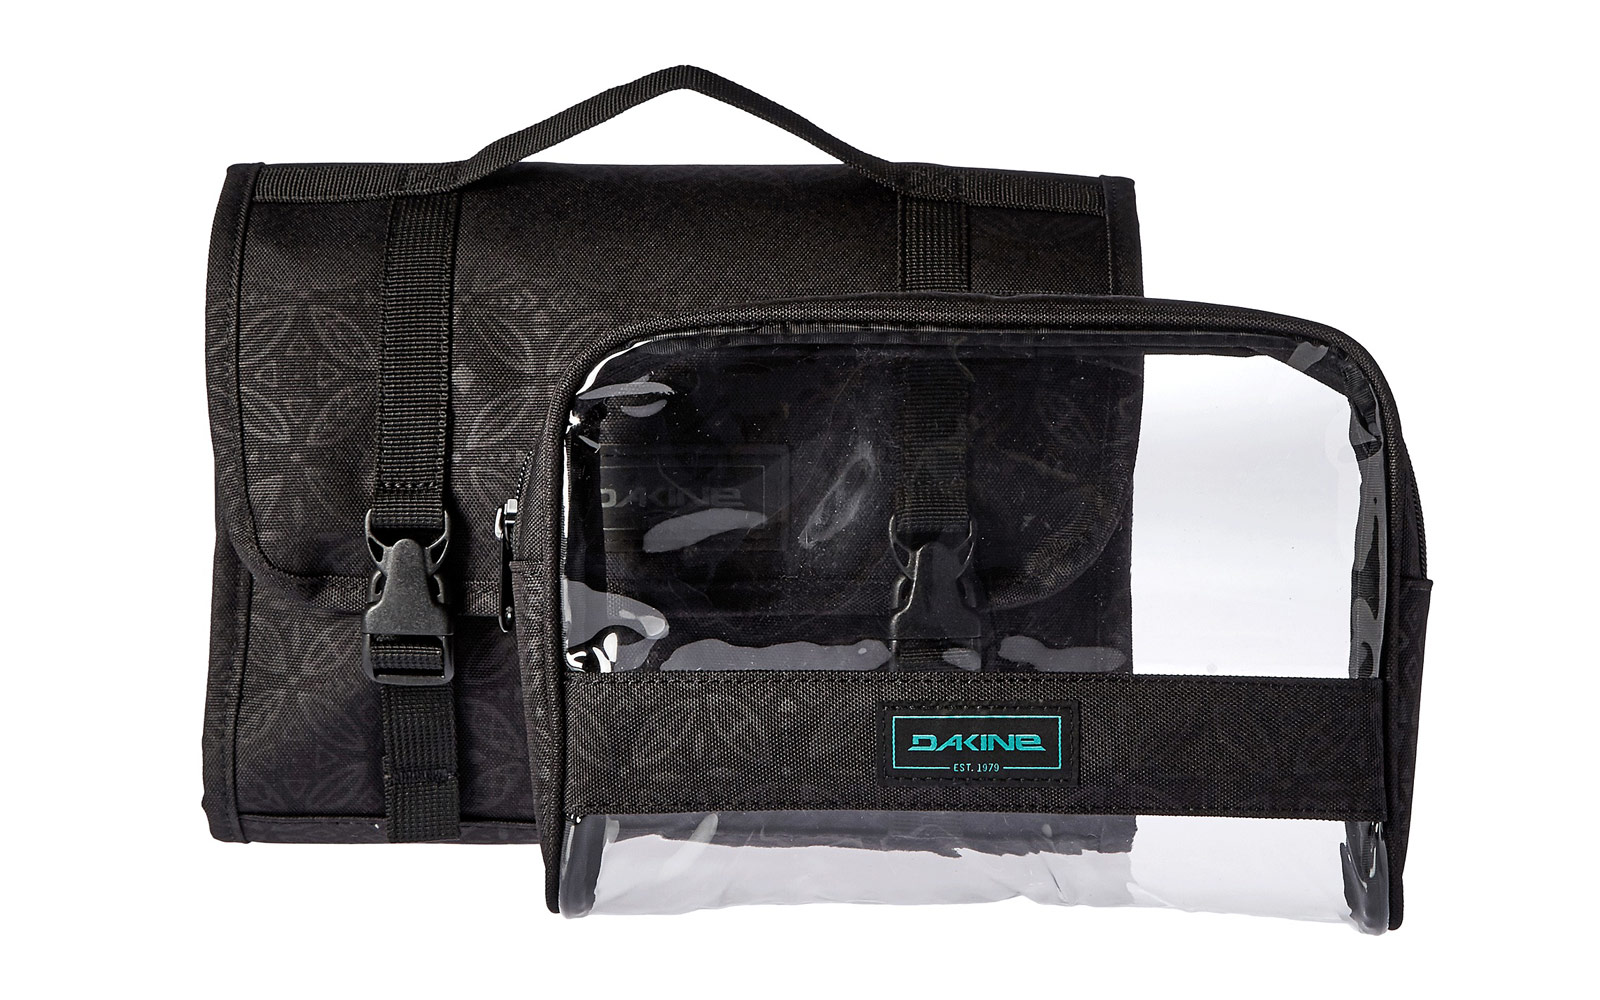 Black, Dakine, Hanging Travel Organizer